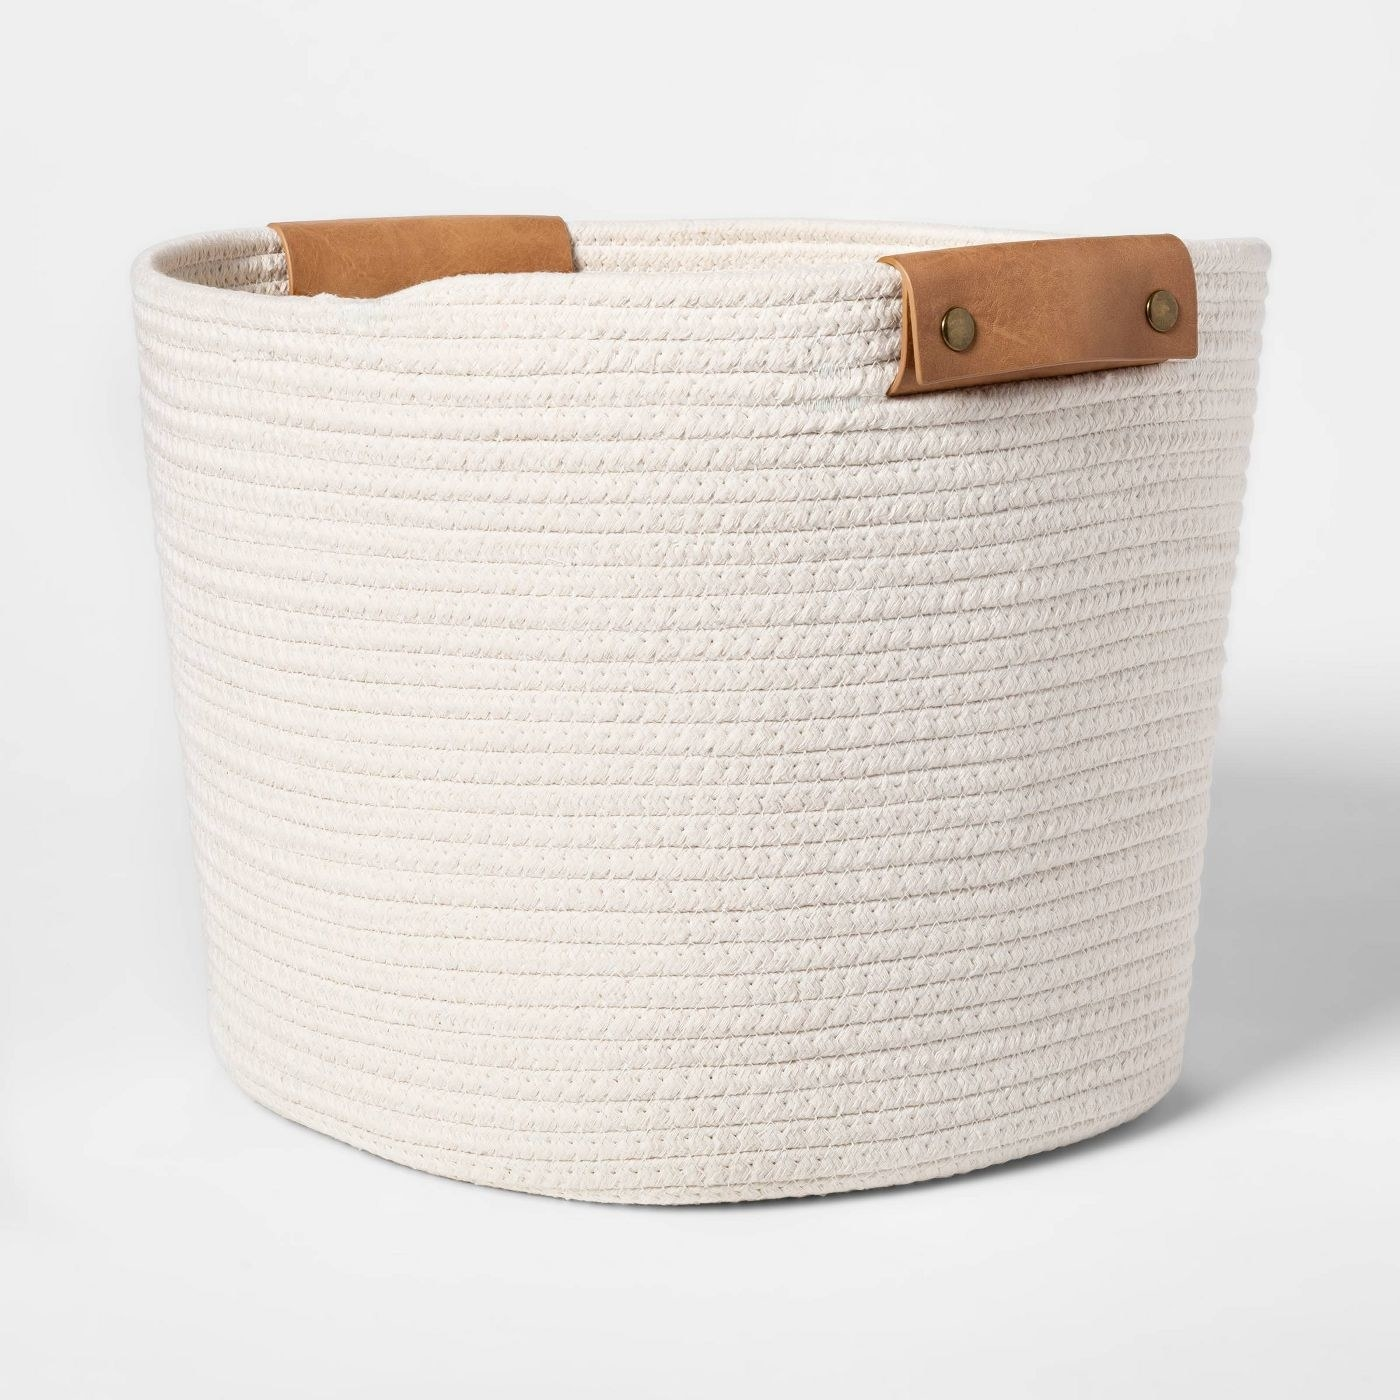 A white woven basket with leather handles